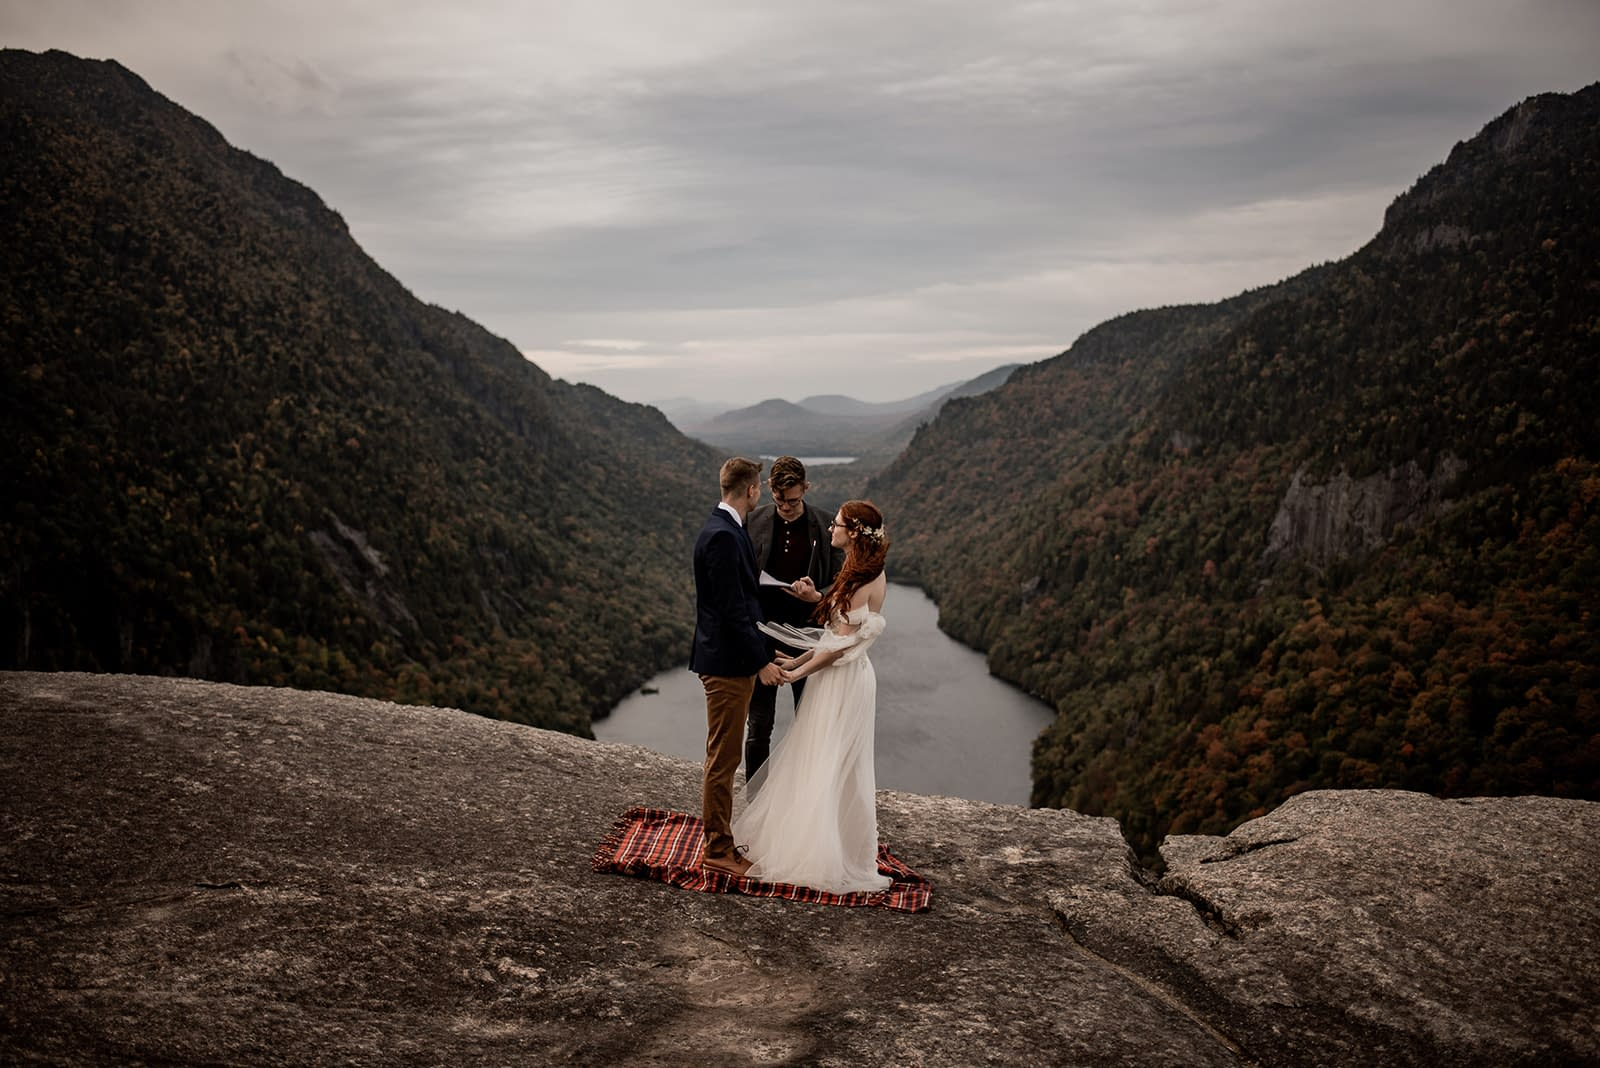 Elopement ceremony above the Ausable River in the Adirondacks